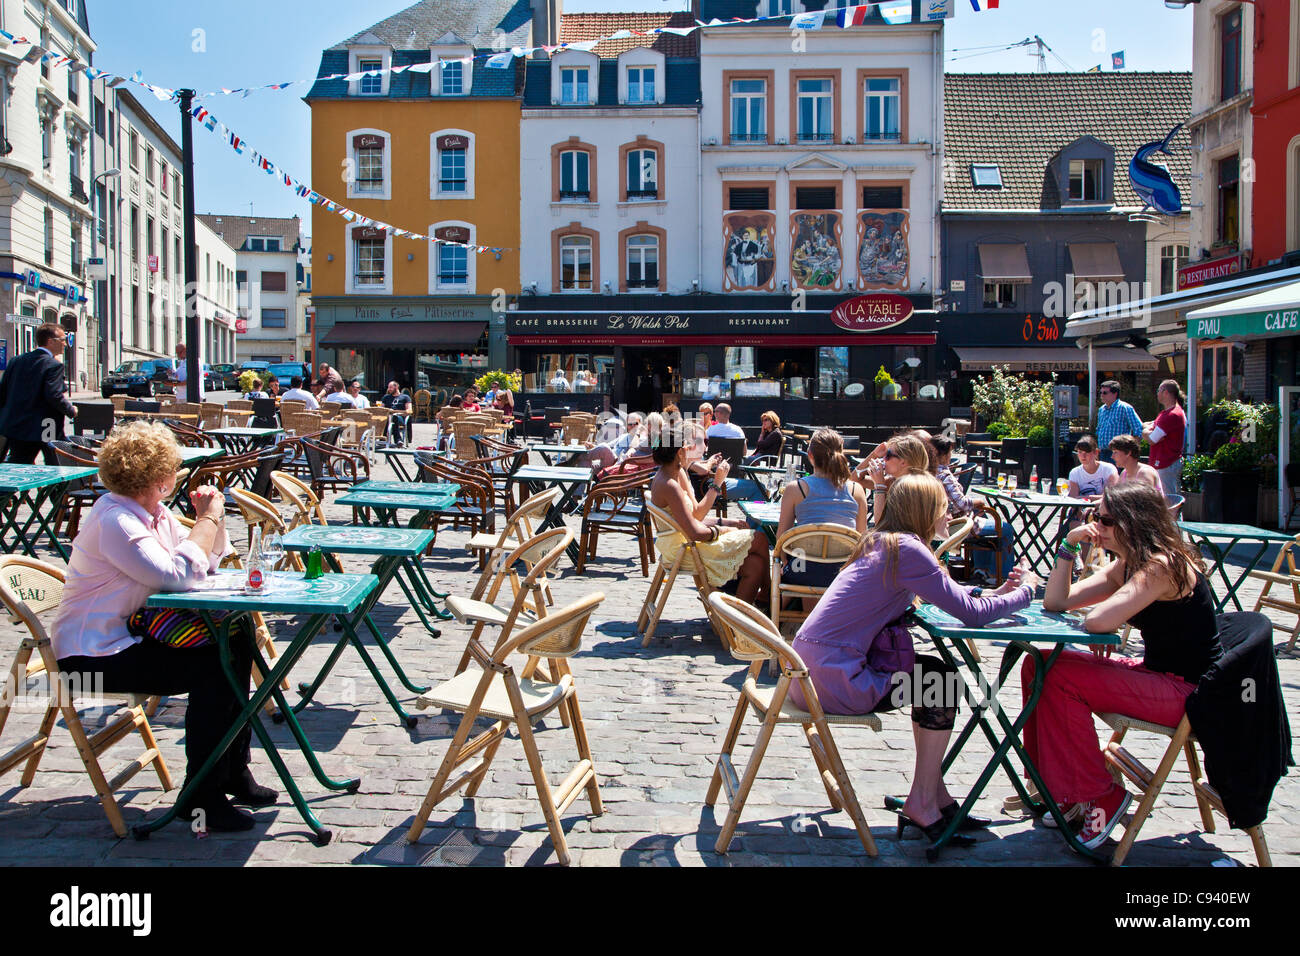 People enjoying the sunshine and chatting at outdoor cafes in the Place Dalton in Boulogne, France - Stock Image